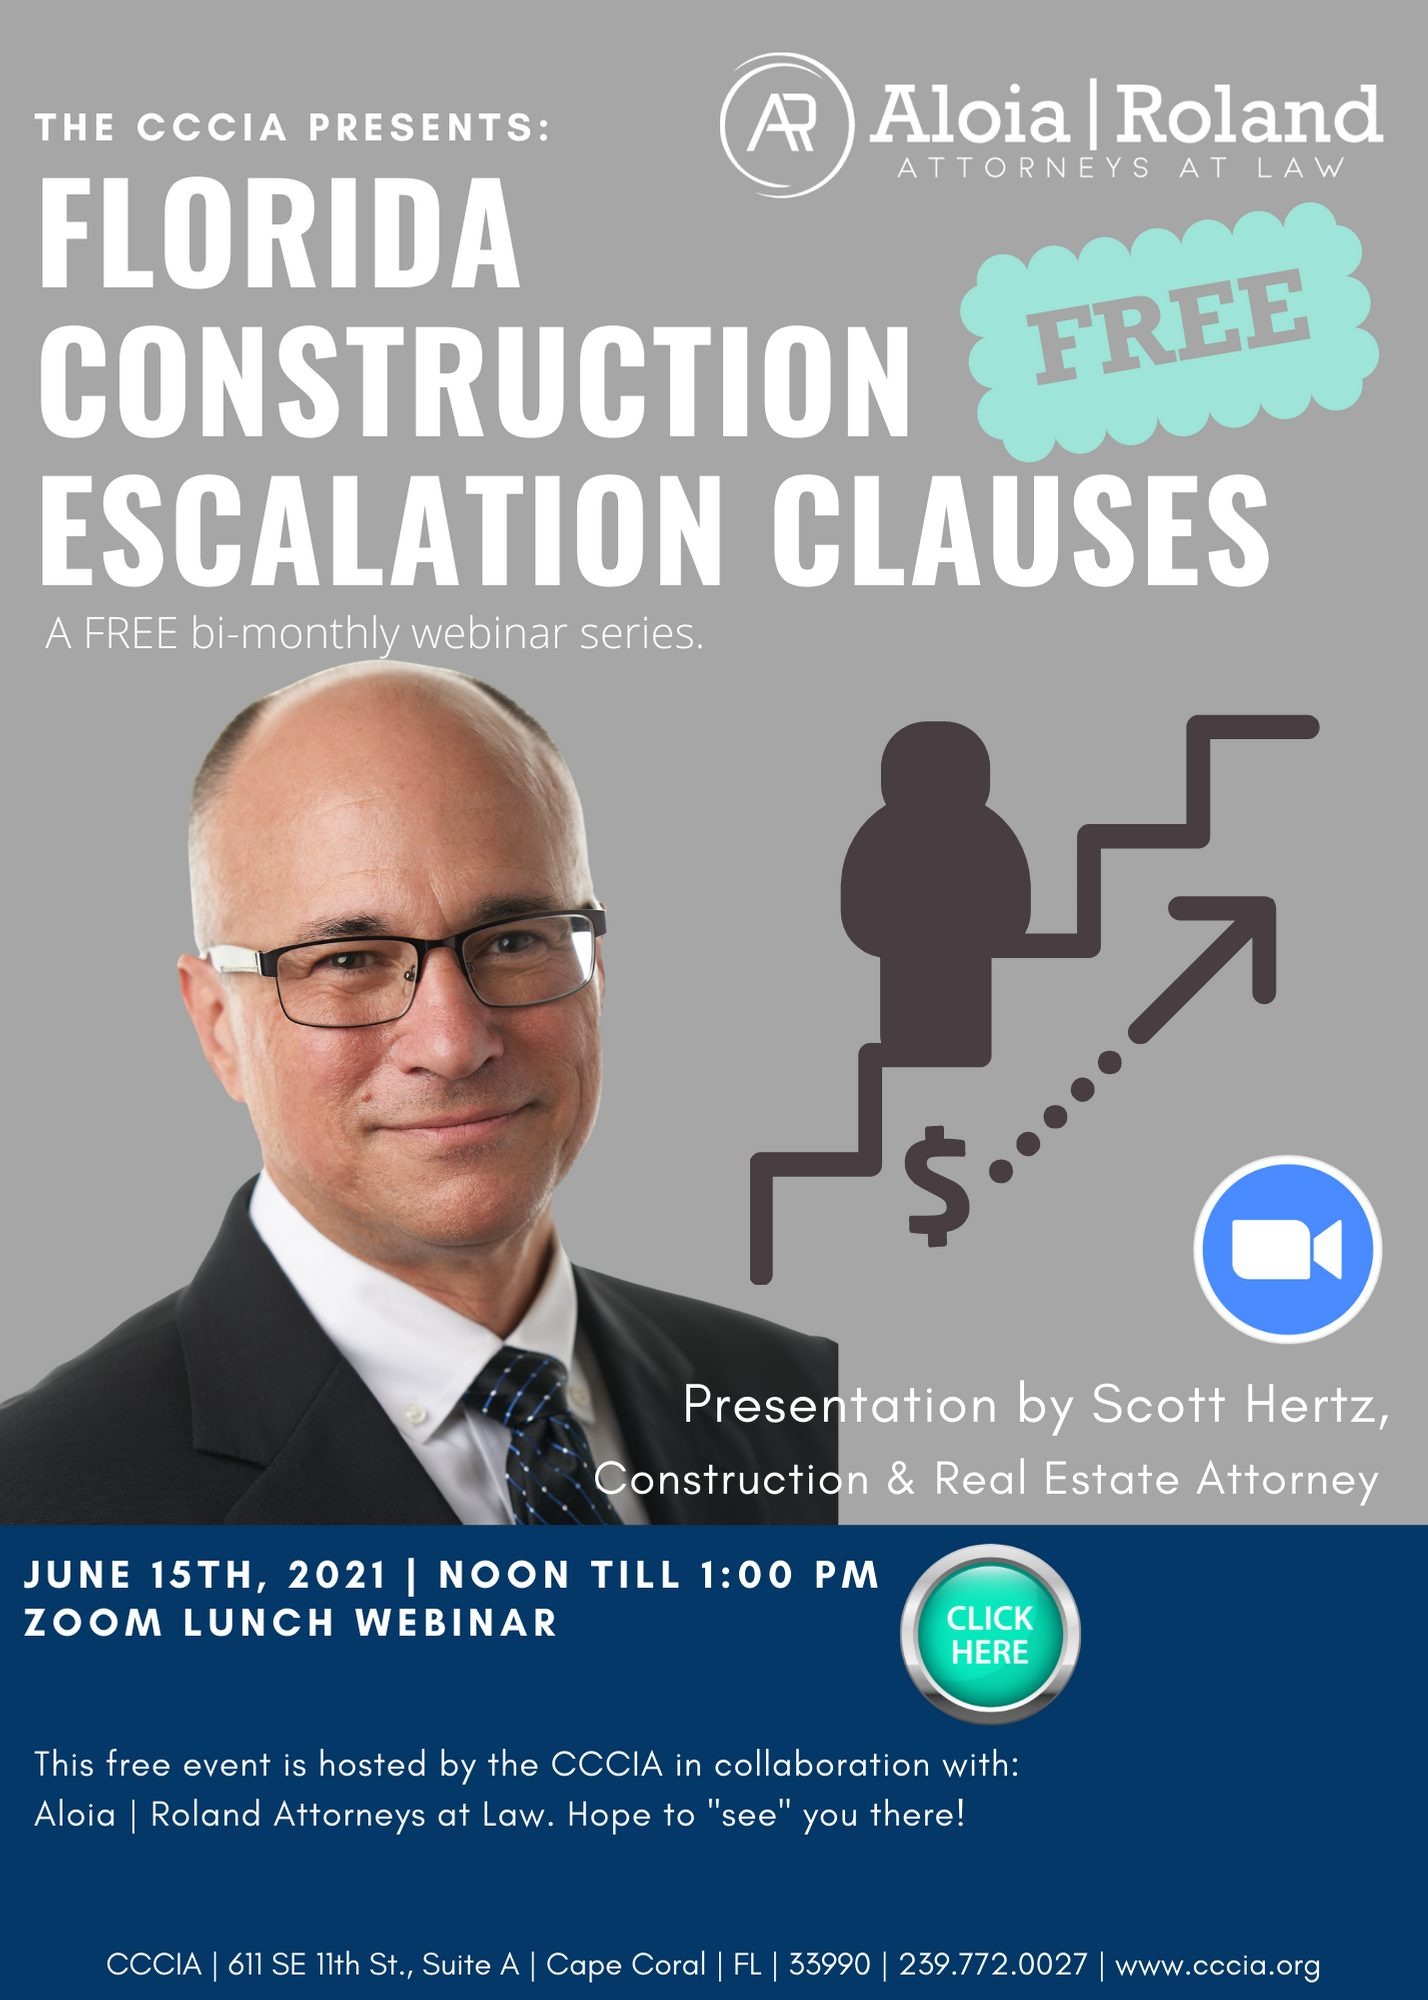 Construction Escalation Clauses image